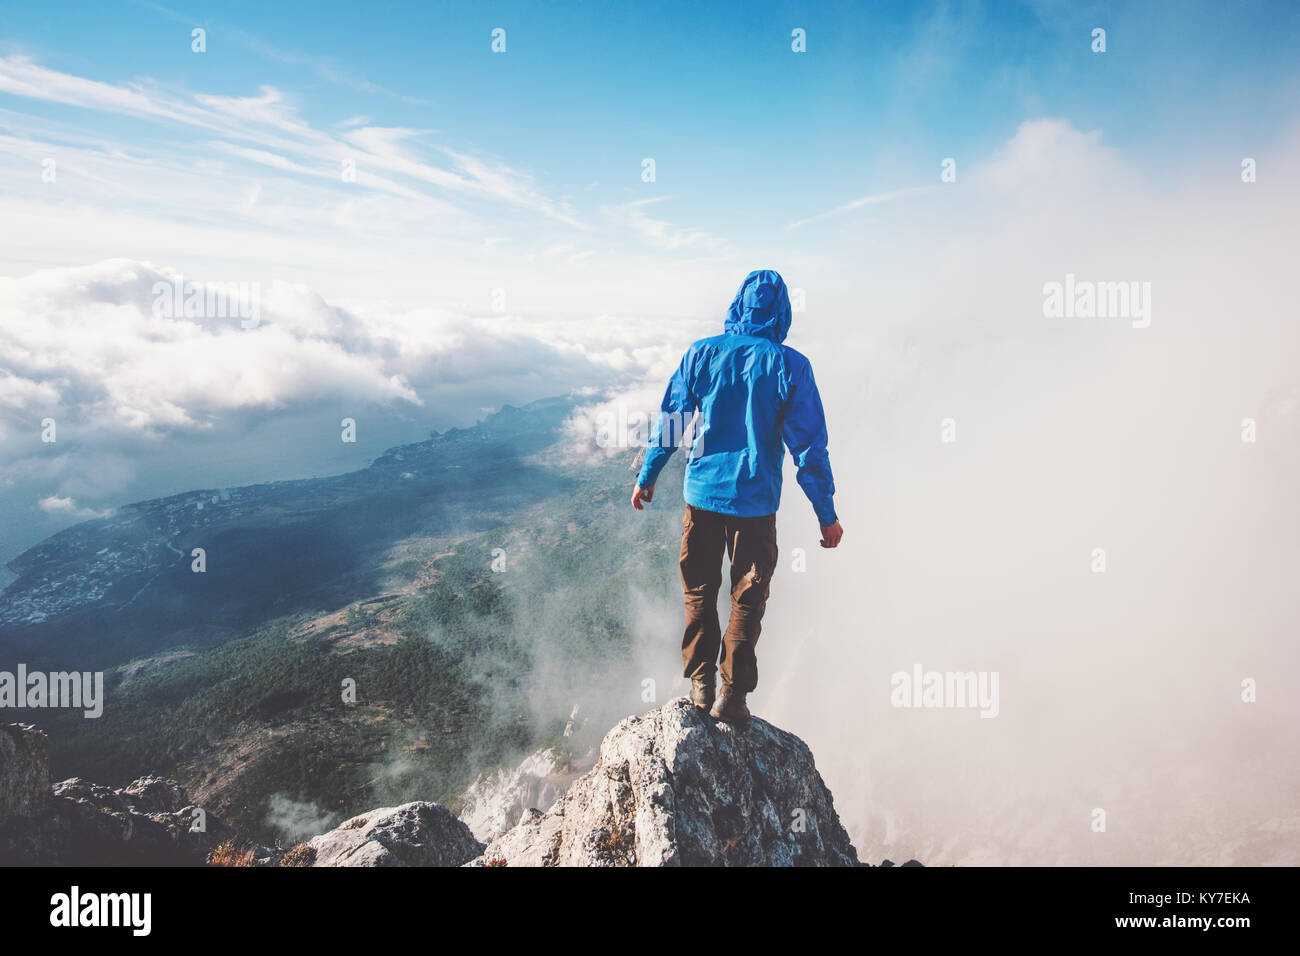 Man Traveler on mountain cliff enjoying aerial view over clouds Travel Lifestyle success concept adventure active - Stock Image